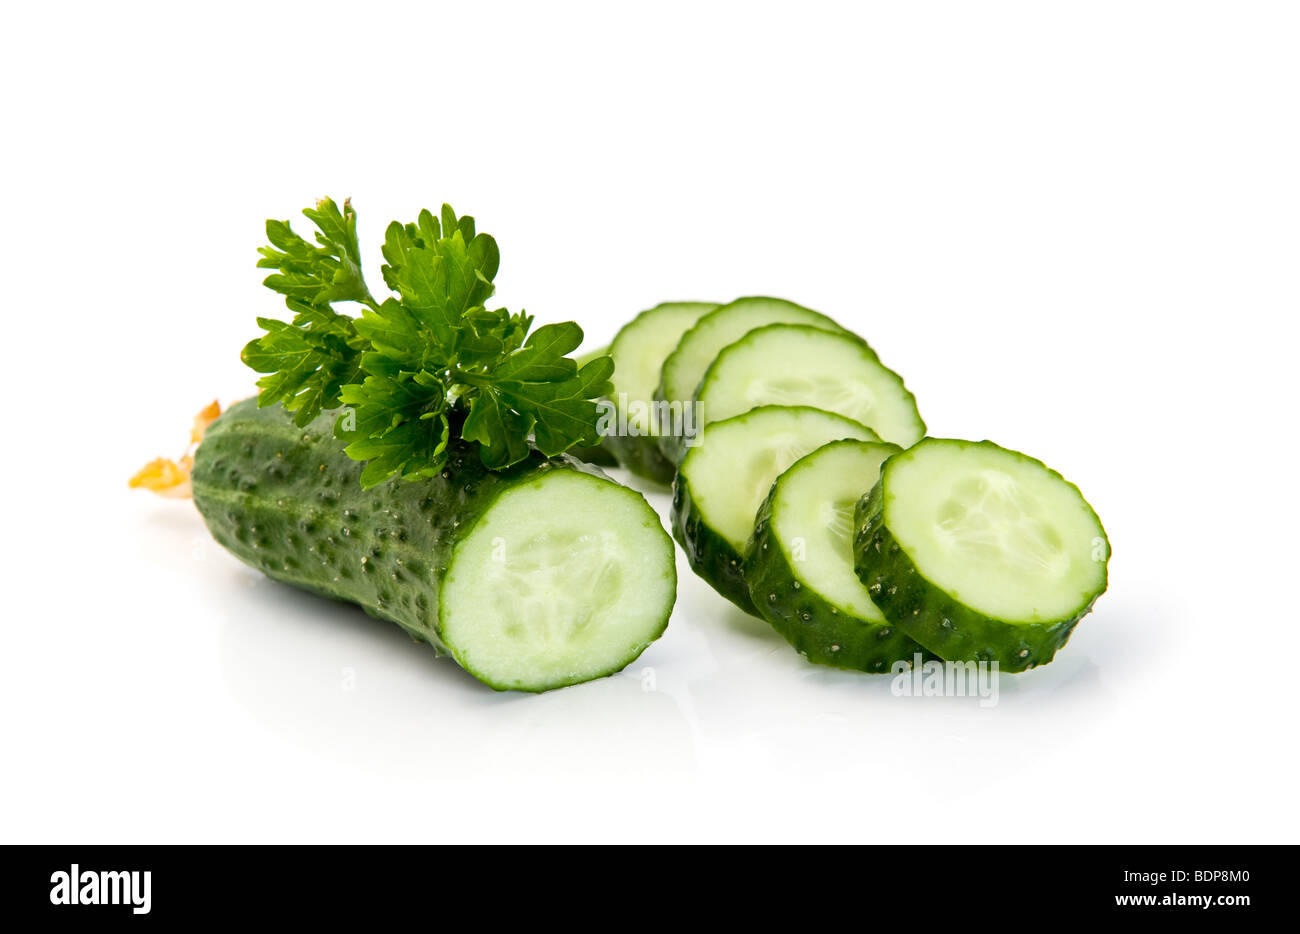 Cucumber slices isolated over white background. - Stock Image